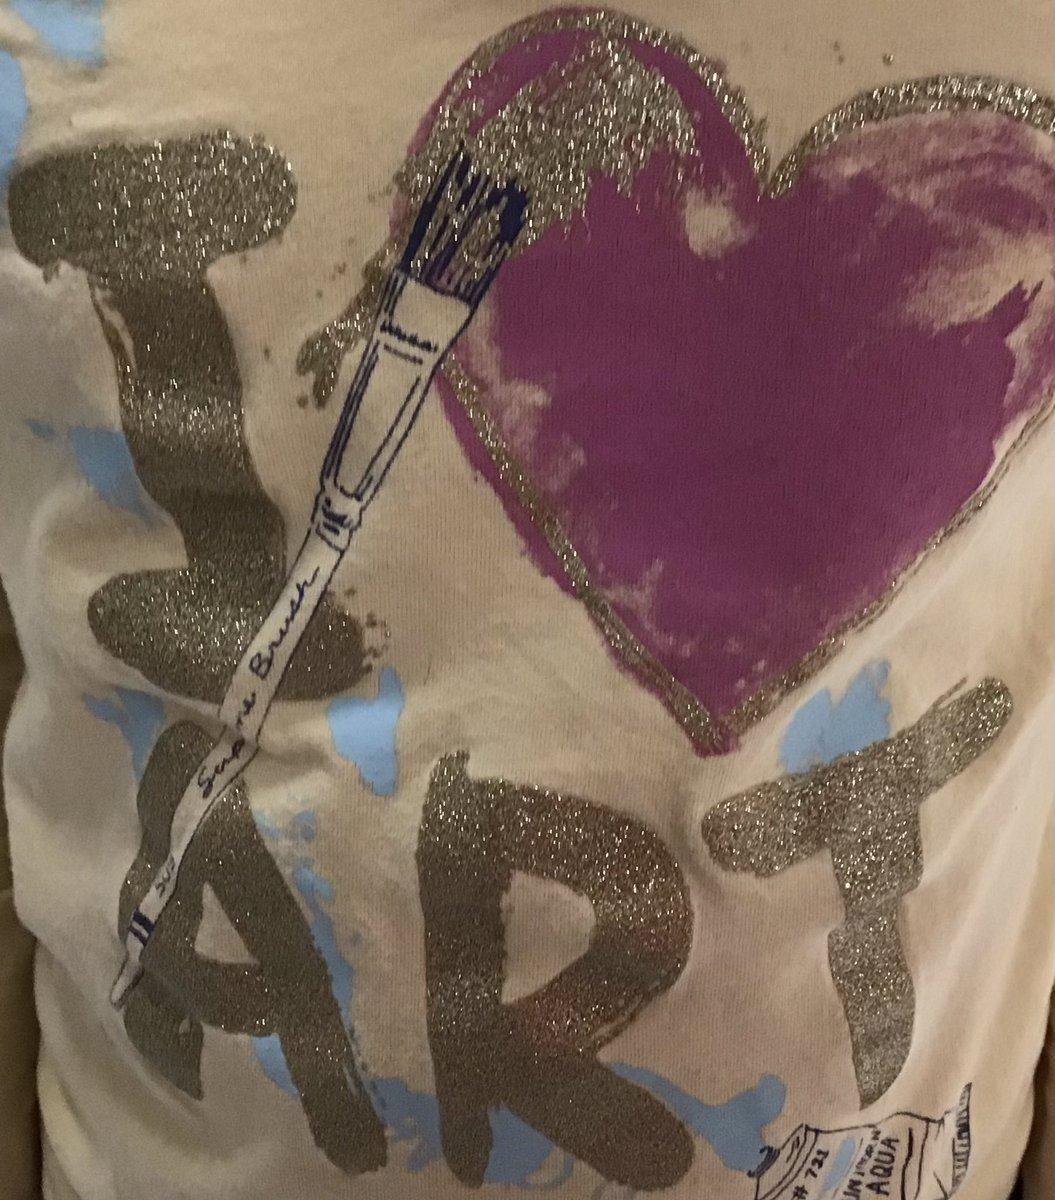 <a target='_blank' href='http://search.twitter.com/search?q=I'><a target='_blank' href='https://twitter.com/hashtag/I?src=hash'>#I</a></a>♥️Art Great t-shirt today in art! And I love this Halloween drawing! Happy to see everyone having fun in art! 🎨🤗👍😀 <a target='_blank' href='https://t.co/wjlKDzy3Ty'>https://t.co/wjlKDzy3Ty</a>